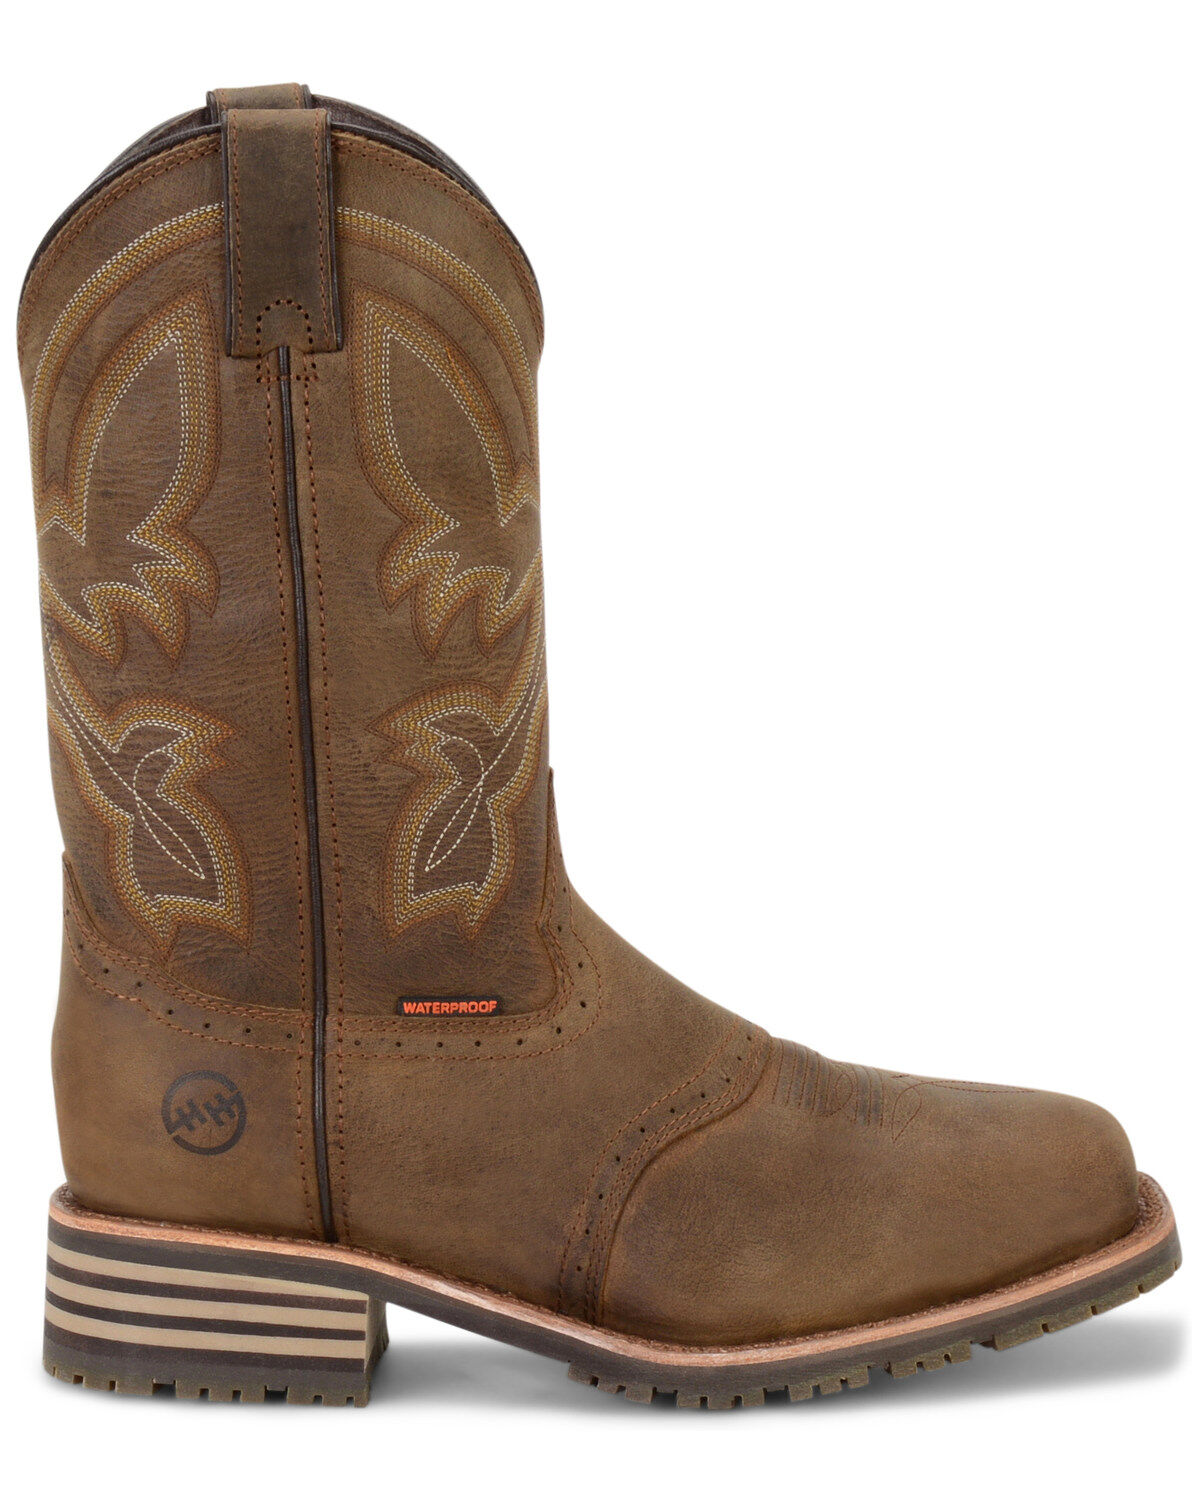 Safety Toe Western Work Boots | Boot Barn